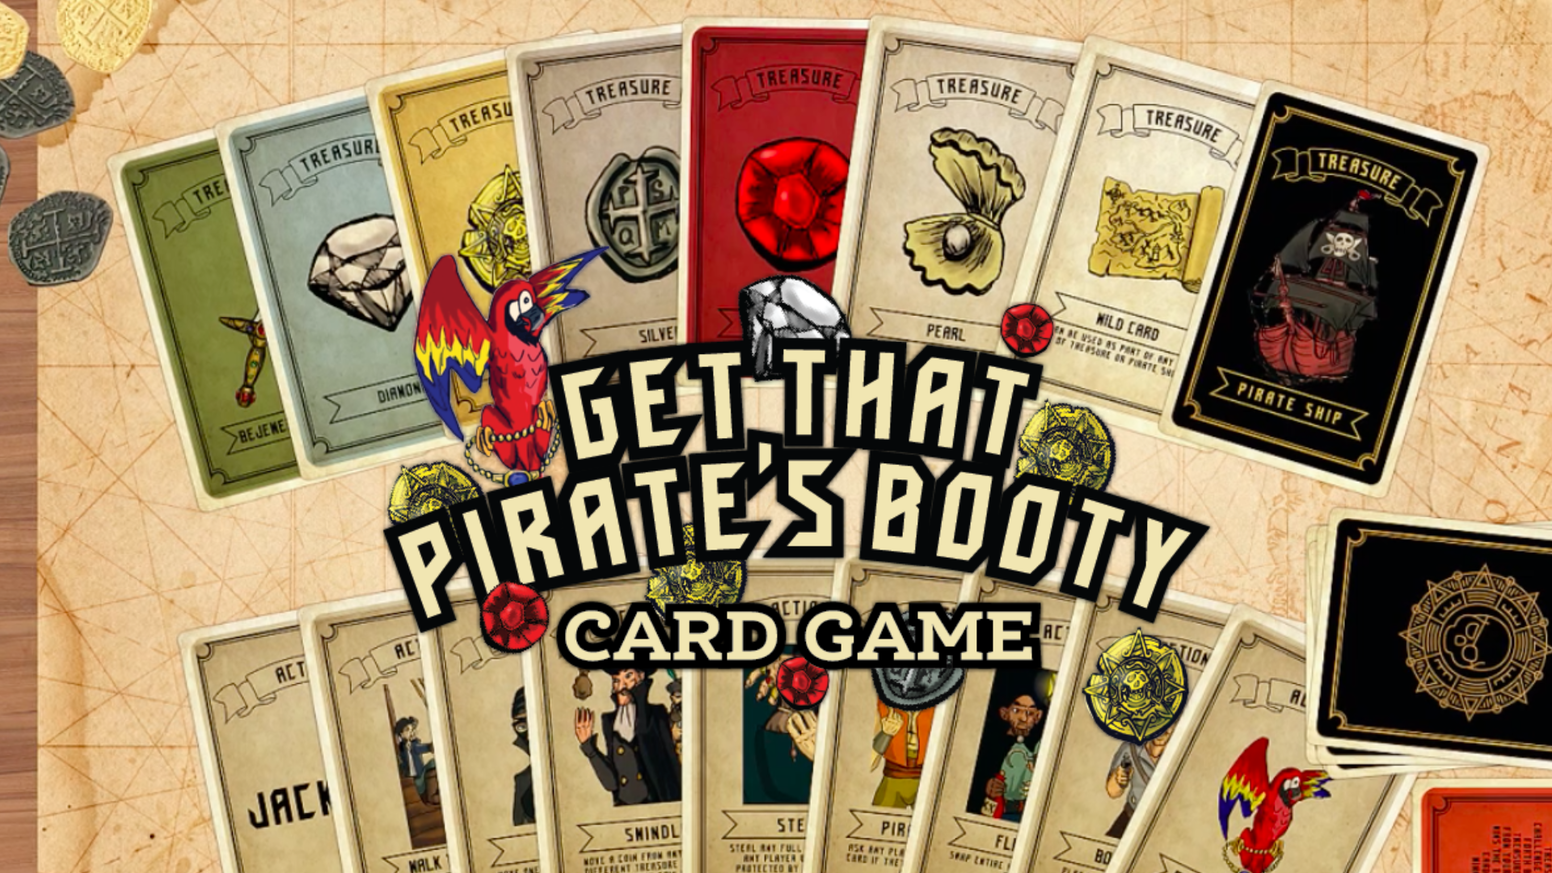 Get That Pirate's Booty is a card game of theft, trickery, and sabotage plus some pirate ships! This game will become one of your family favorites. Weren't able to back our kickstarter. Check out our website to pre-order today!